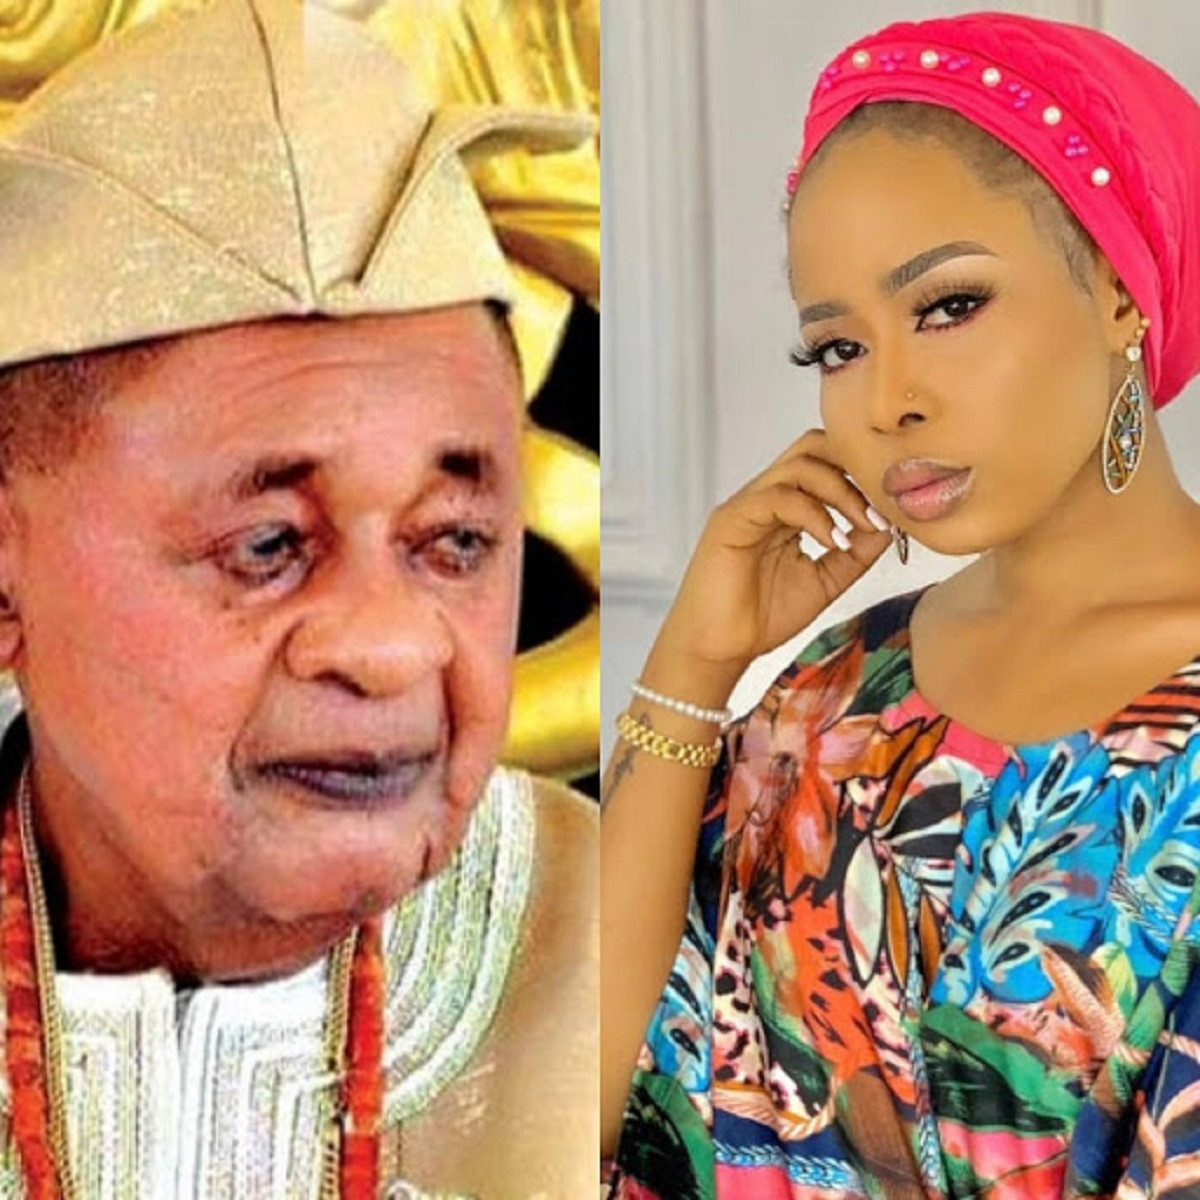 Divorce is okay, breaking up is okay - Queen Ola shares cryptic post months after her rumored split from Alaafin of Oyo lindaikejisblog